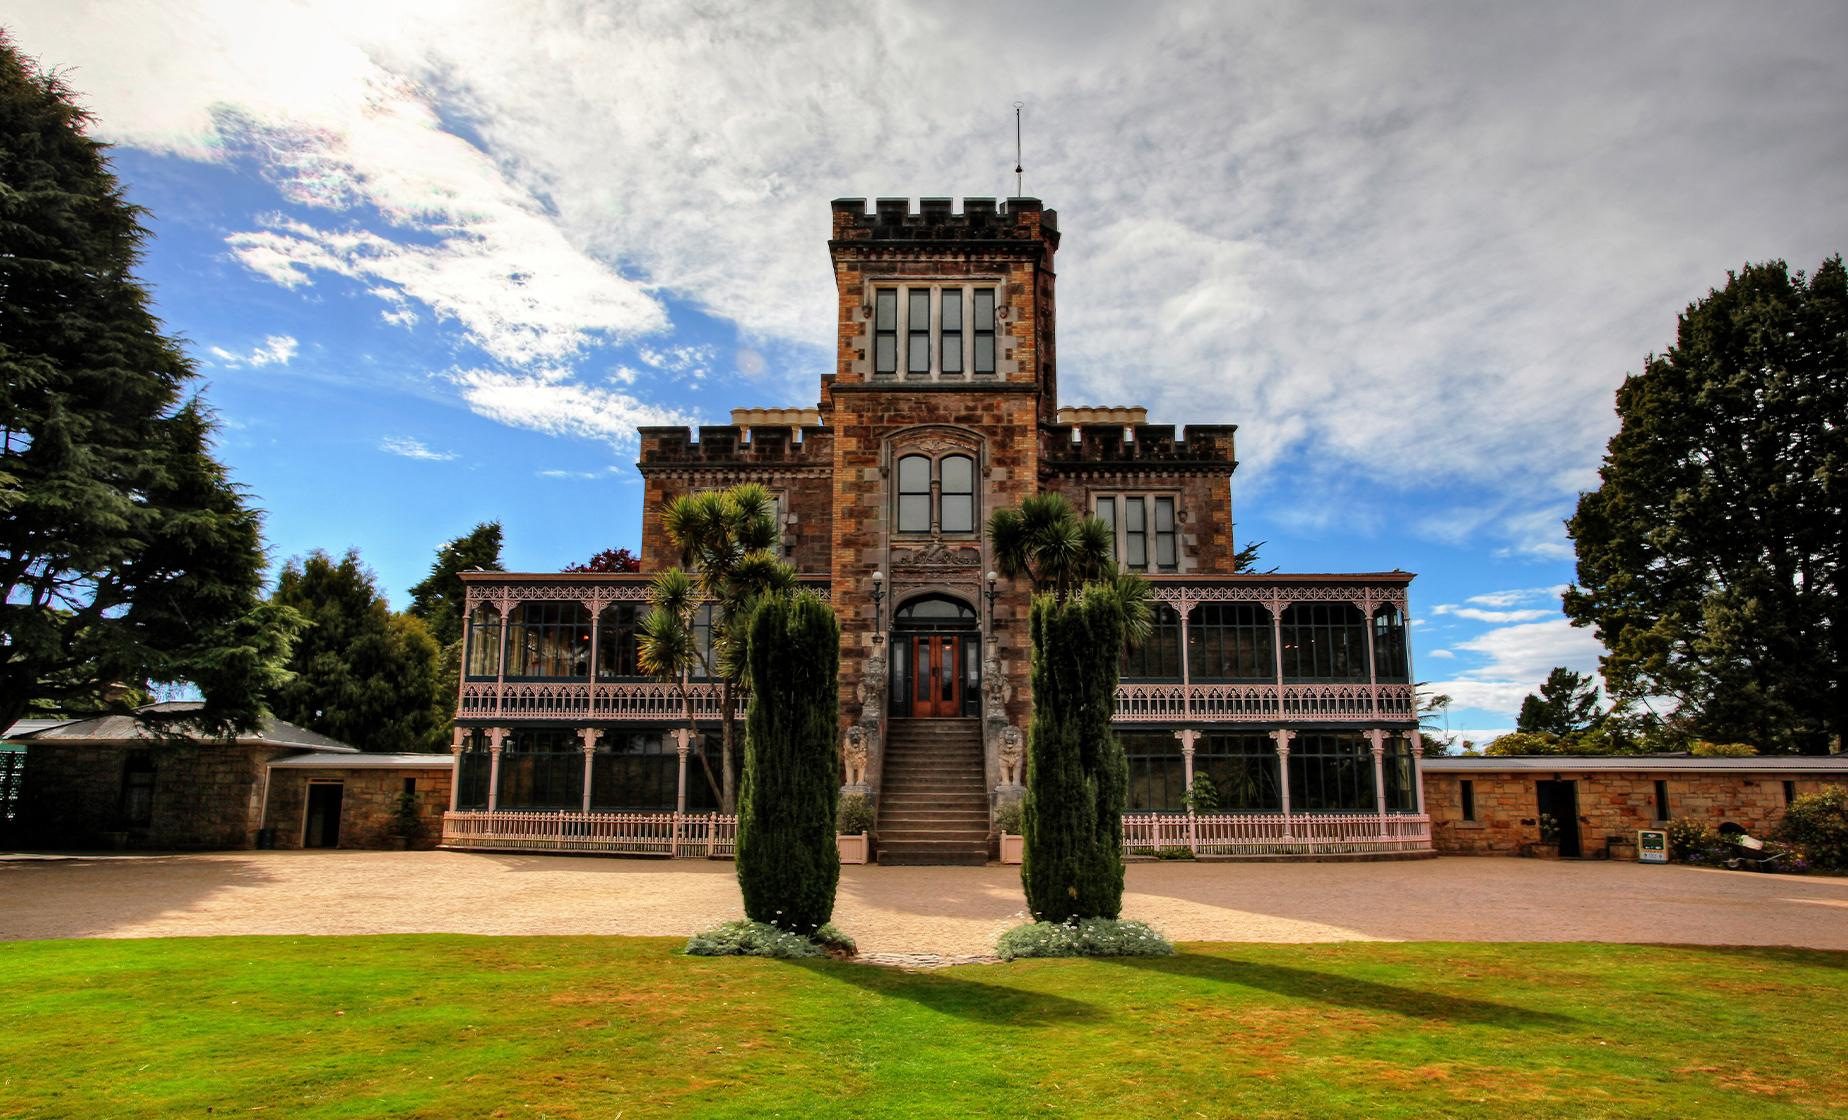 Wildlife, History and Larnach Castle